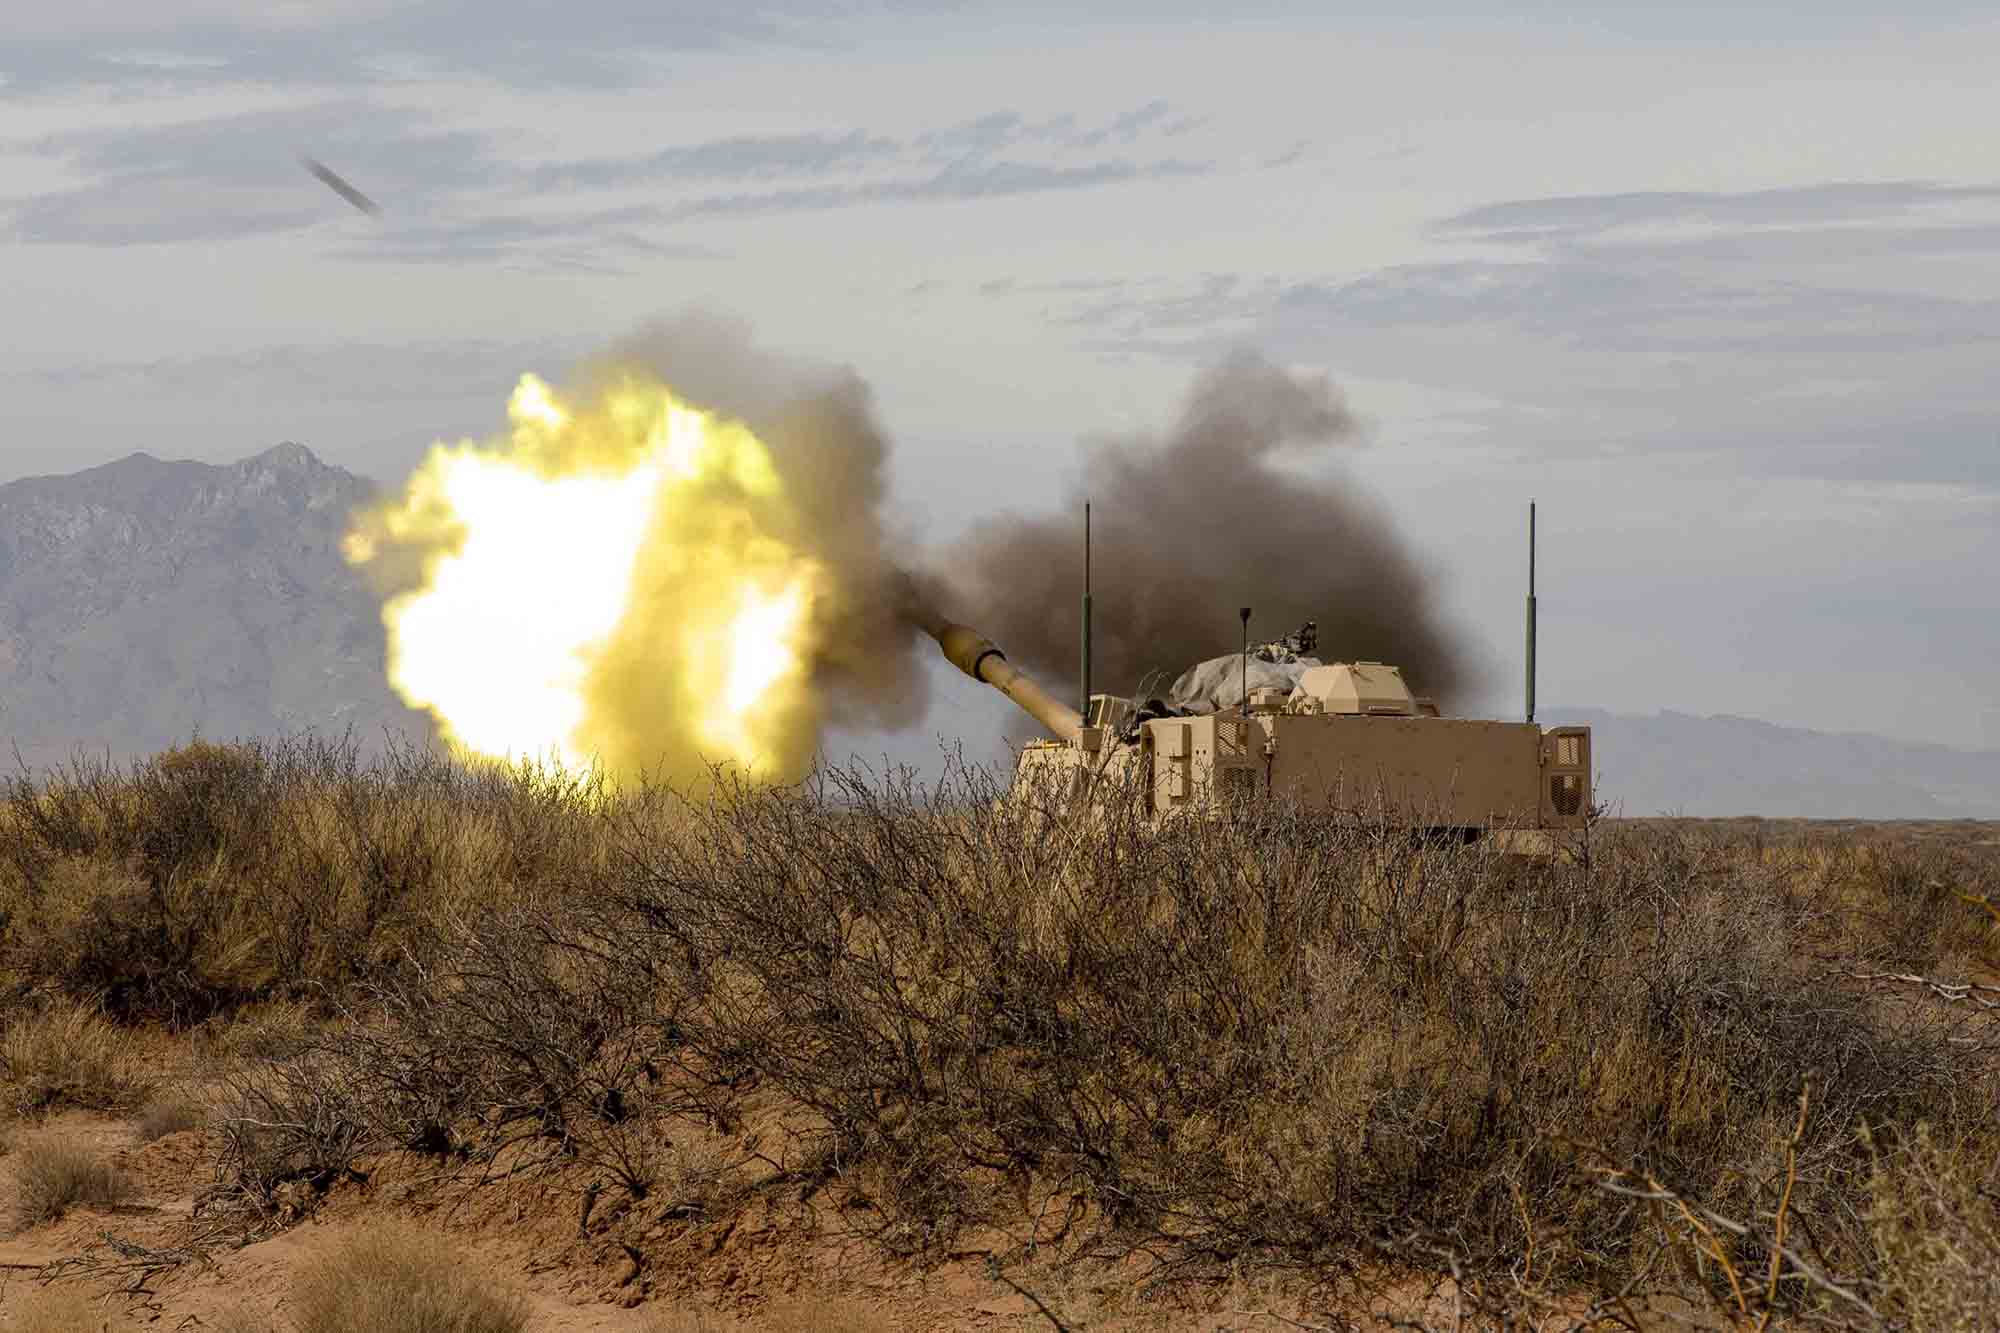 Soldiers with 2nd Battalion, 3rd Field Artillery Regiment, 1st Armored Brigade Combat Team, 1st Armored Division, shoot a M109 Paladin as part of a battalion-level artillery qualification exercise, March 8, 2021, at the Dona Ana Range Complex, N.M. (Pfc. Luis Santiago/Army)